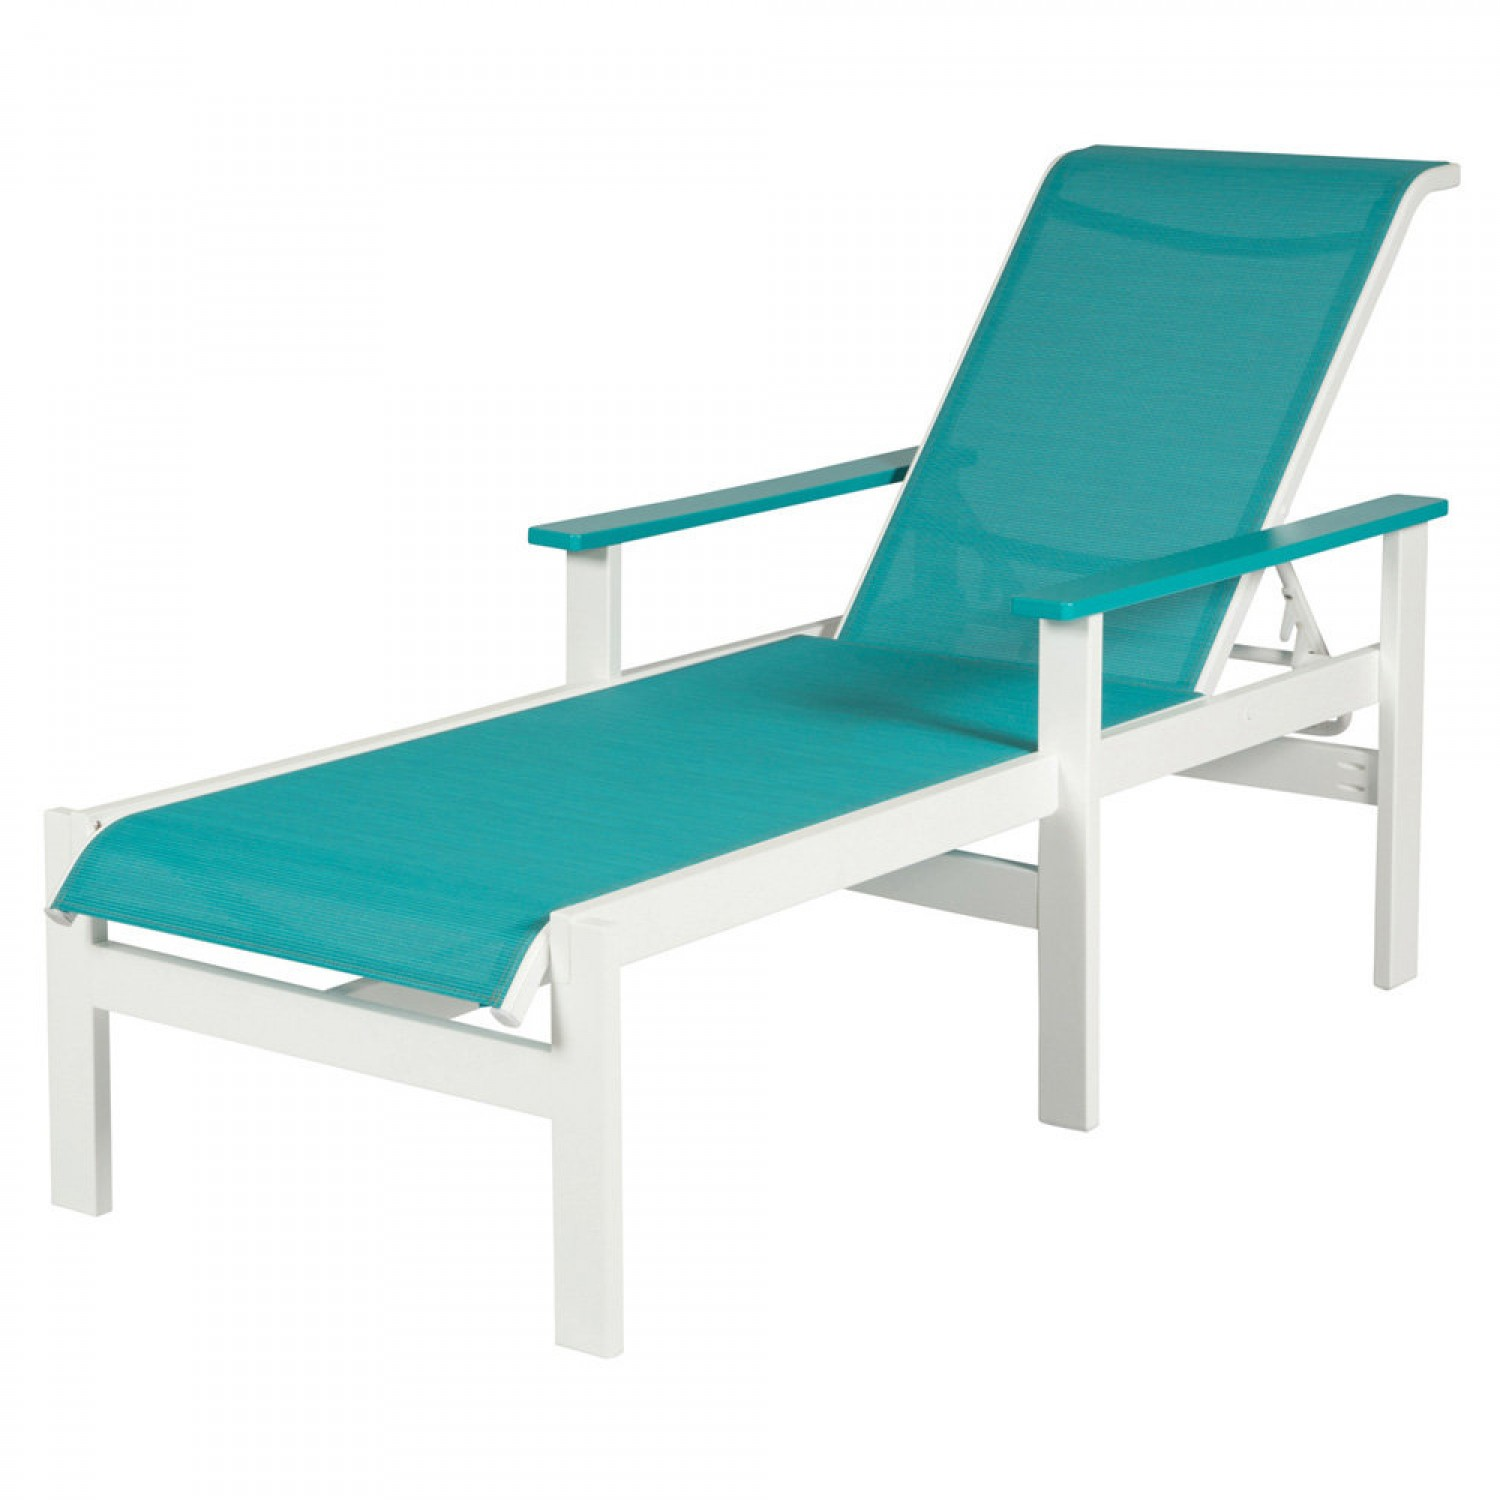 Kingston Outdoor Chaise Lounger